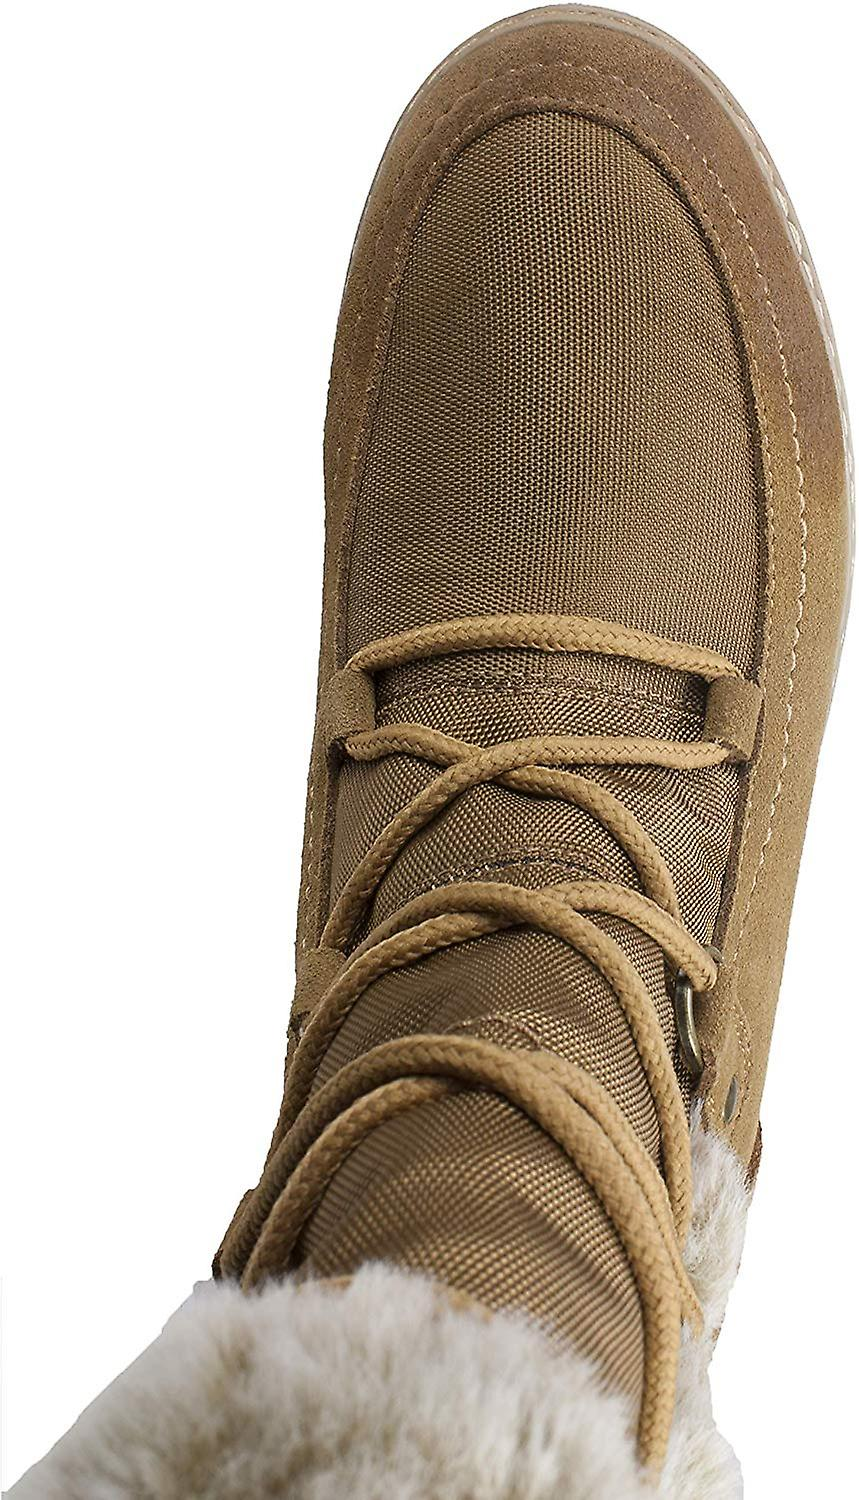 White Mountain Women's Shoes TANSLEY Suede Almond Toe Ankle Cold Weather Boots